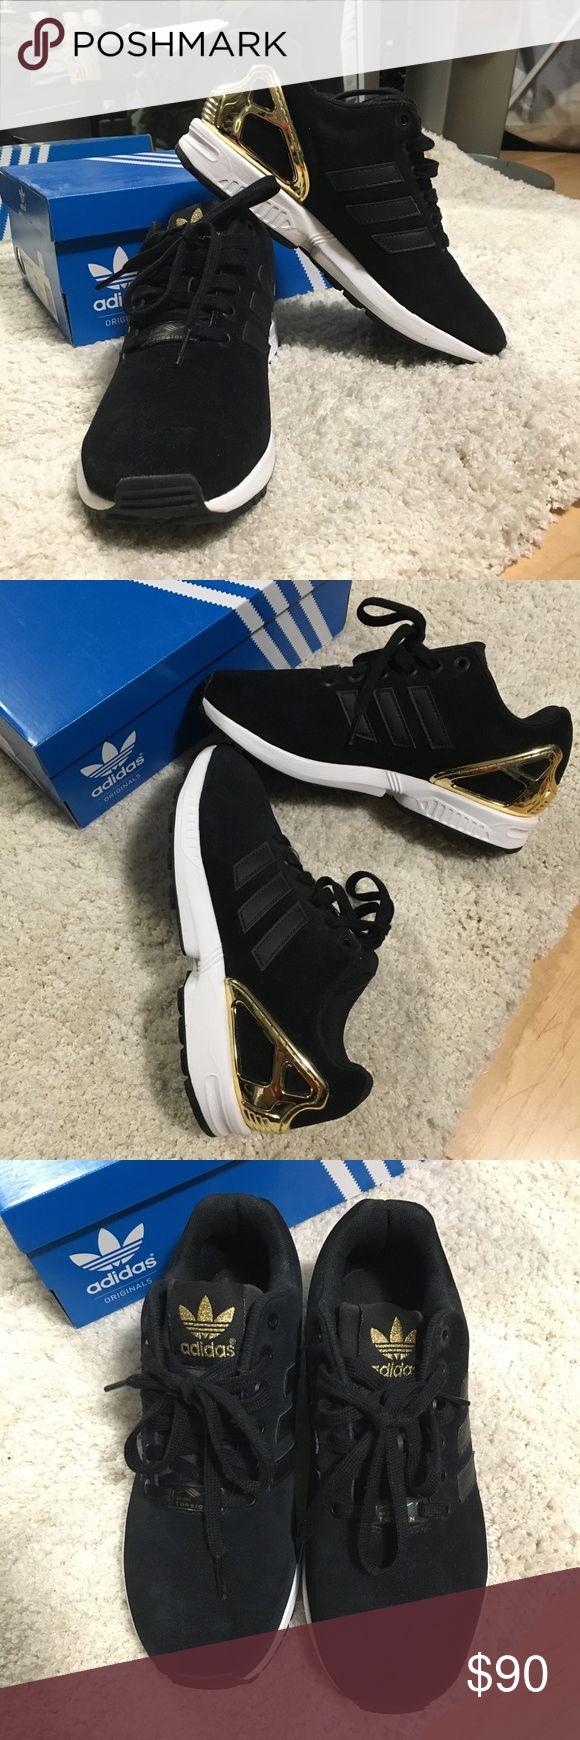 Adidas ZX Flux Black suede upper with gold heel cage Women's size 6 Brand New & comes with box Adidas Originals Shoes Sneakers